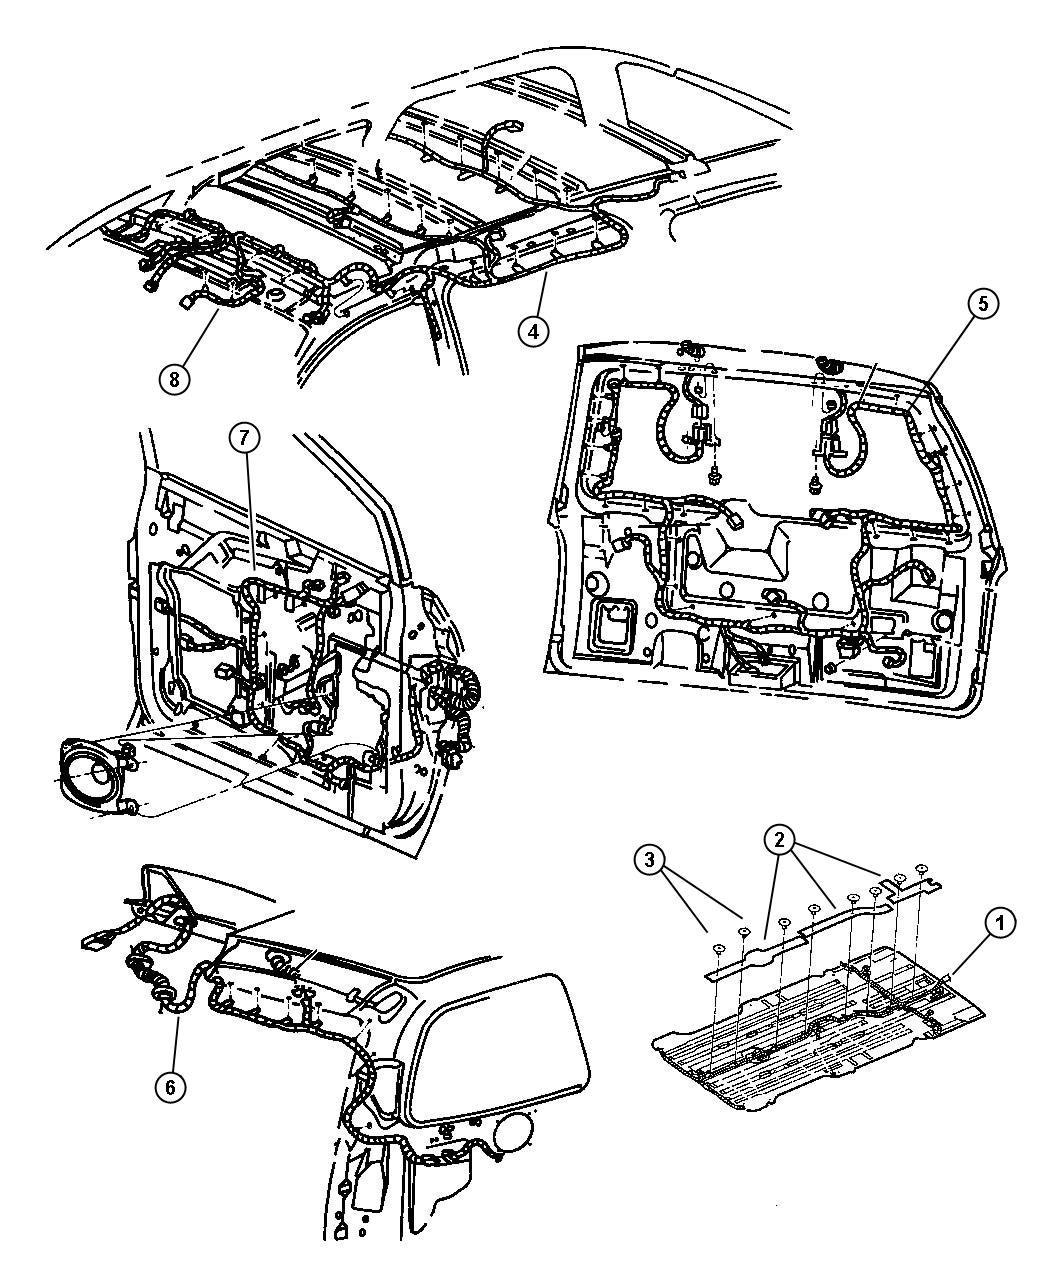 97 Plymouth Voyager Wiring Diagram